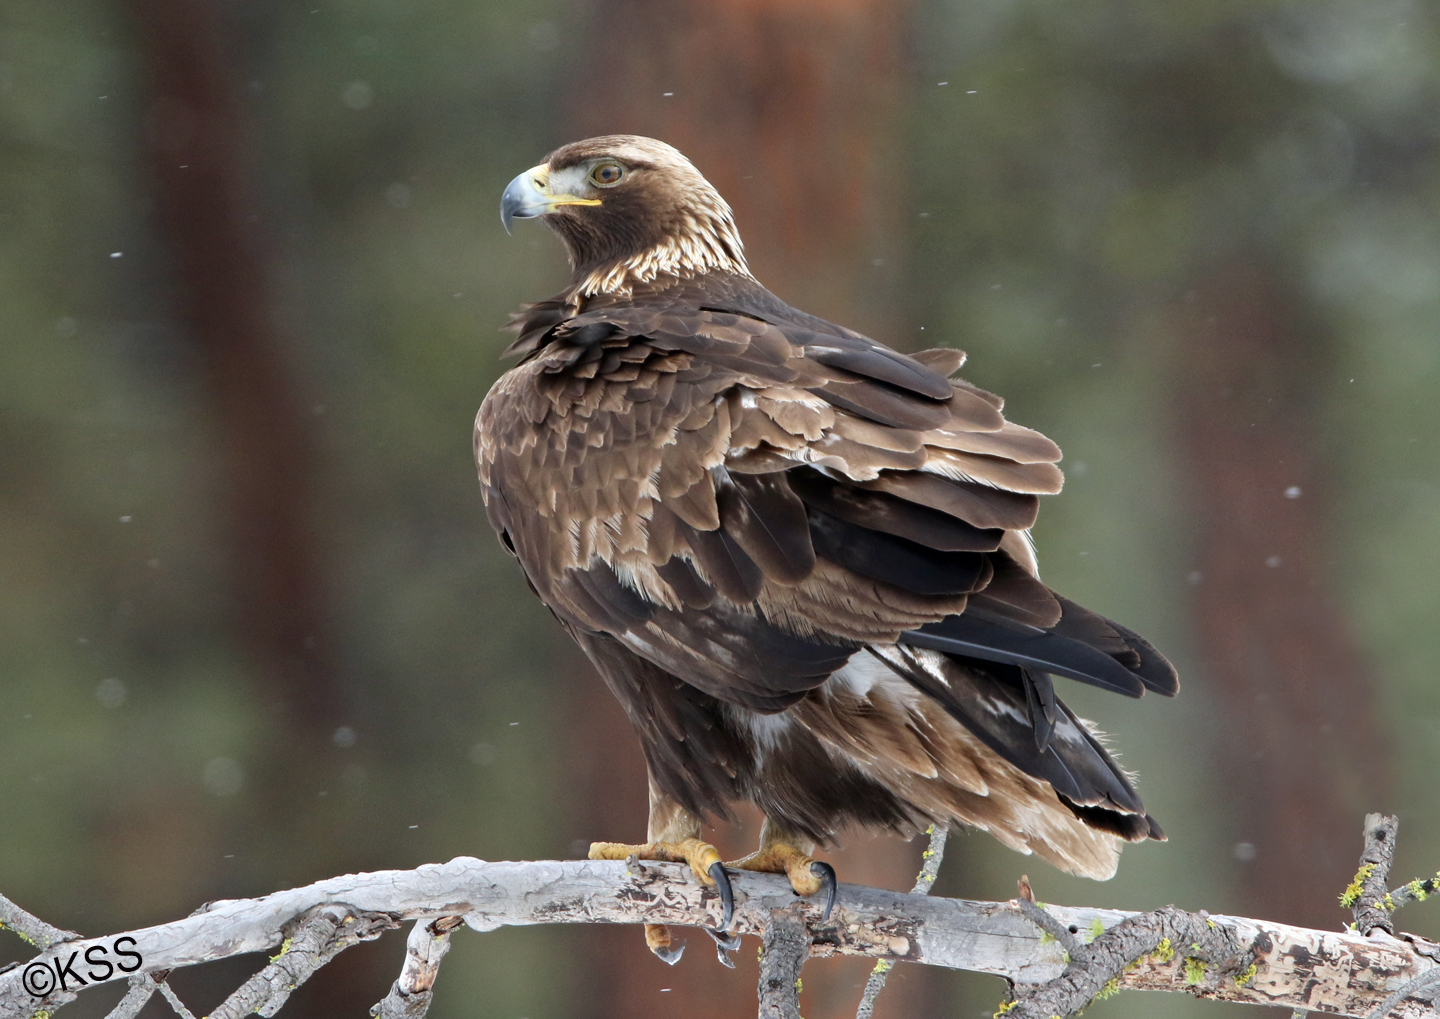 This golden eagle was the most tolerant of its kind we have ever encountered. He perched on a kill by the road, on the nearby hillside, and on a downed tree limb - offering wonderful poses.